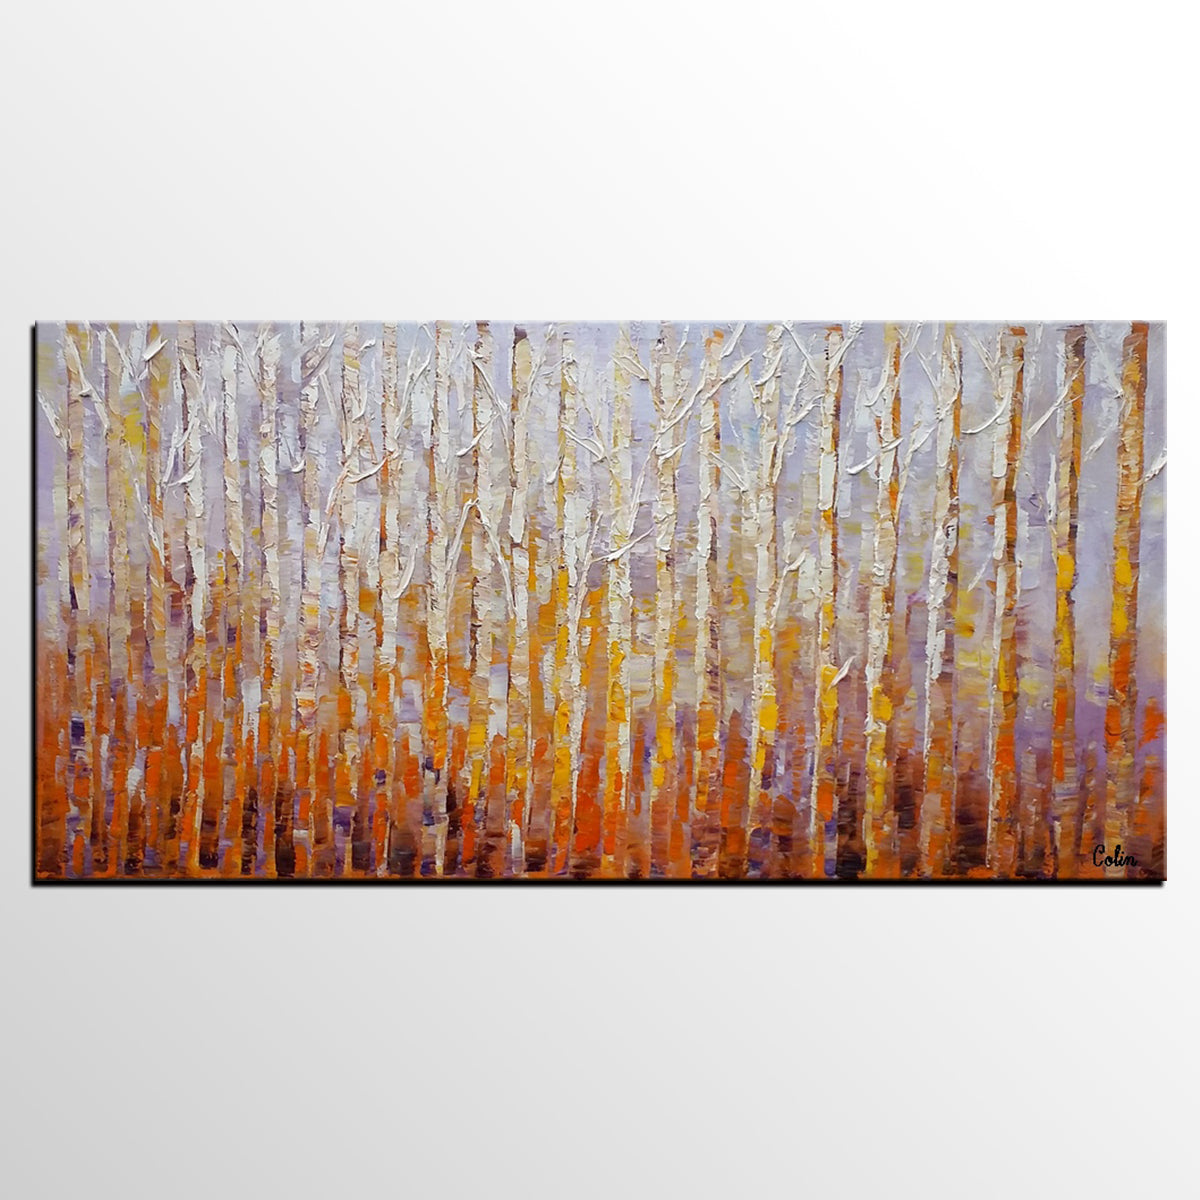 Large Wall Art, Landscape Painting, Oil Painting, Abstract Painting, Large Art, Canvas Art, Living Room Wall Art, Canvas Painting-artworkcanvas